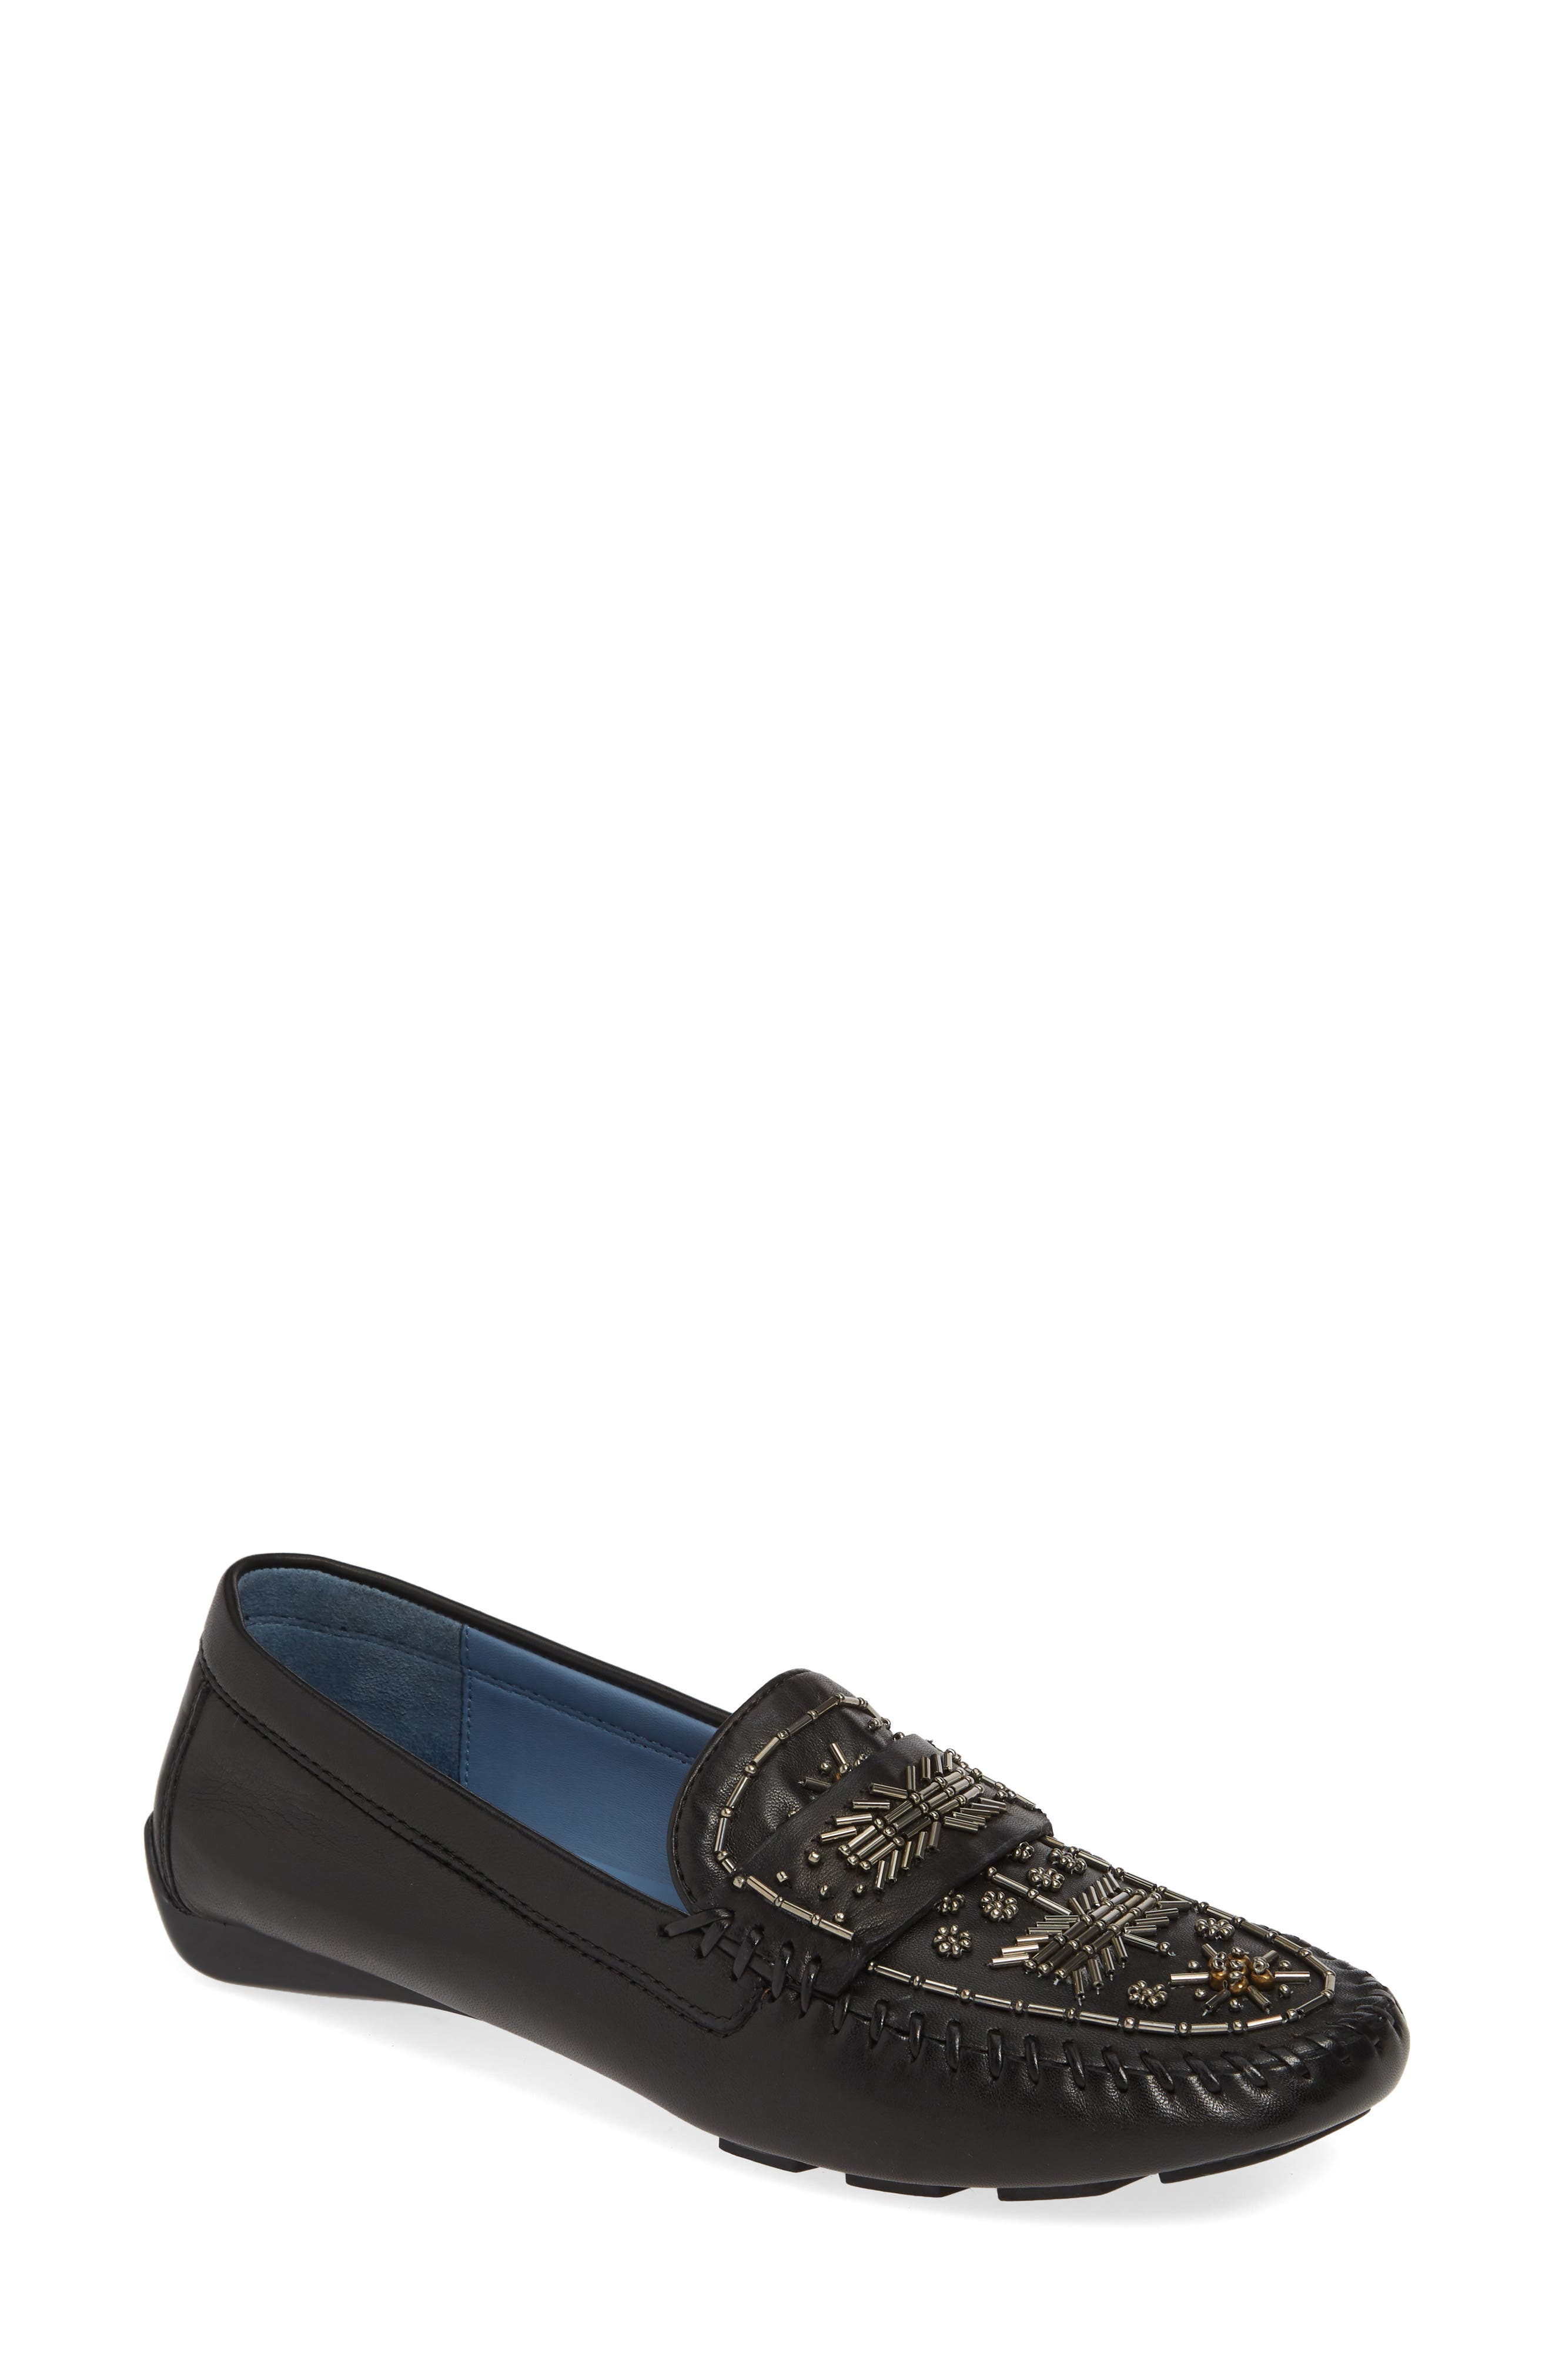 ROBERT ZUR, Majorca Embellished Loafer, Main thumbnail 1, color, BLACK TGLOVE